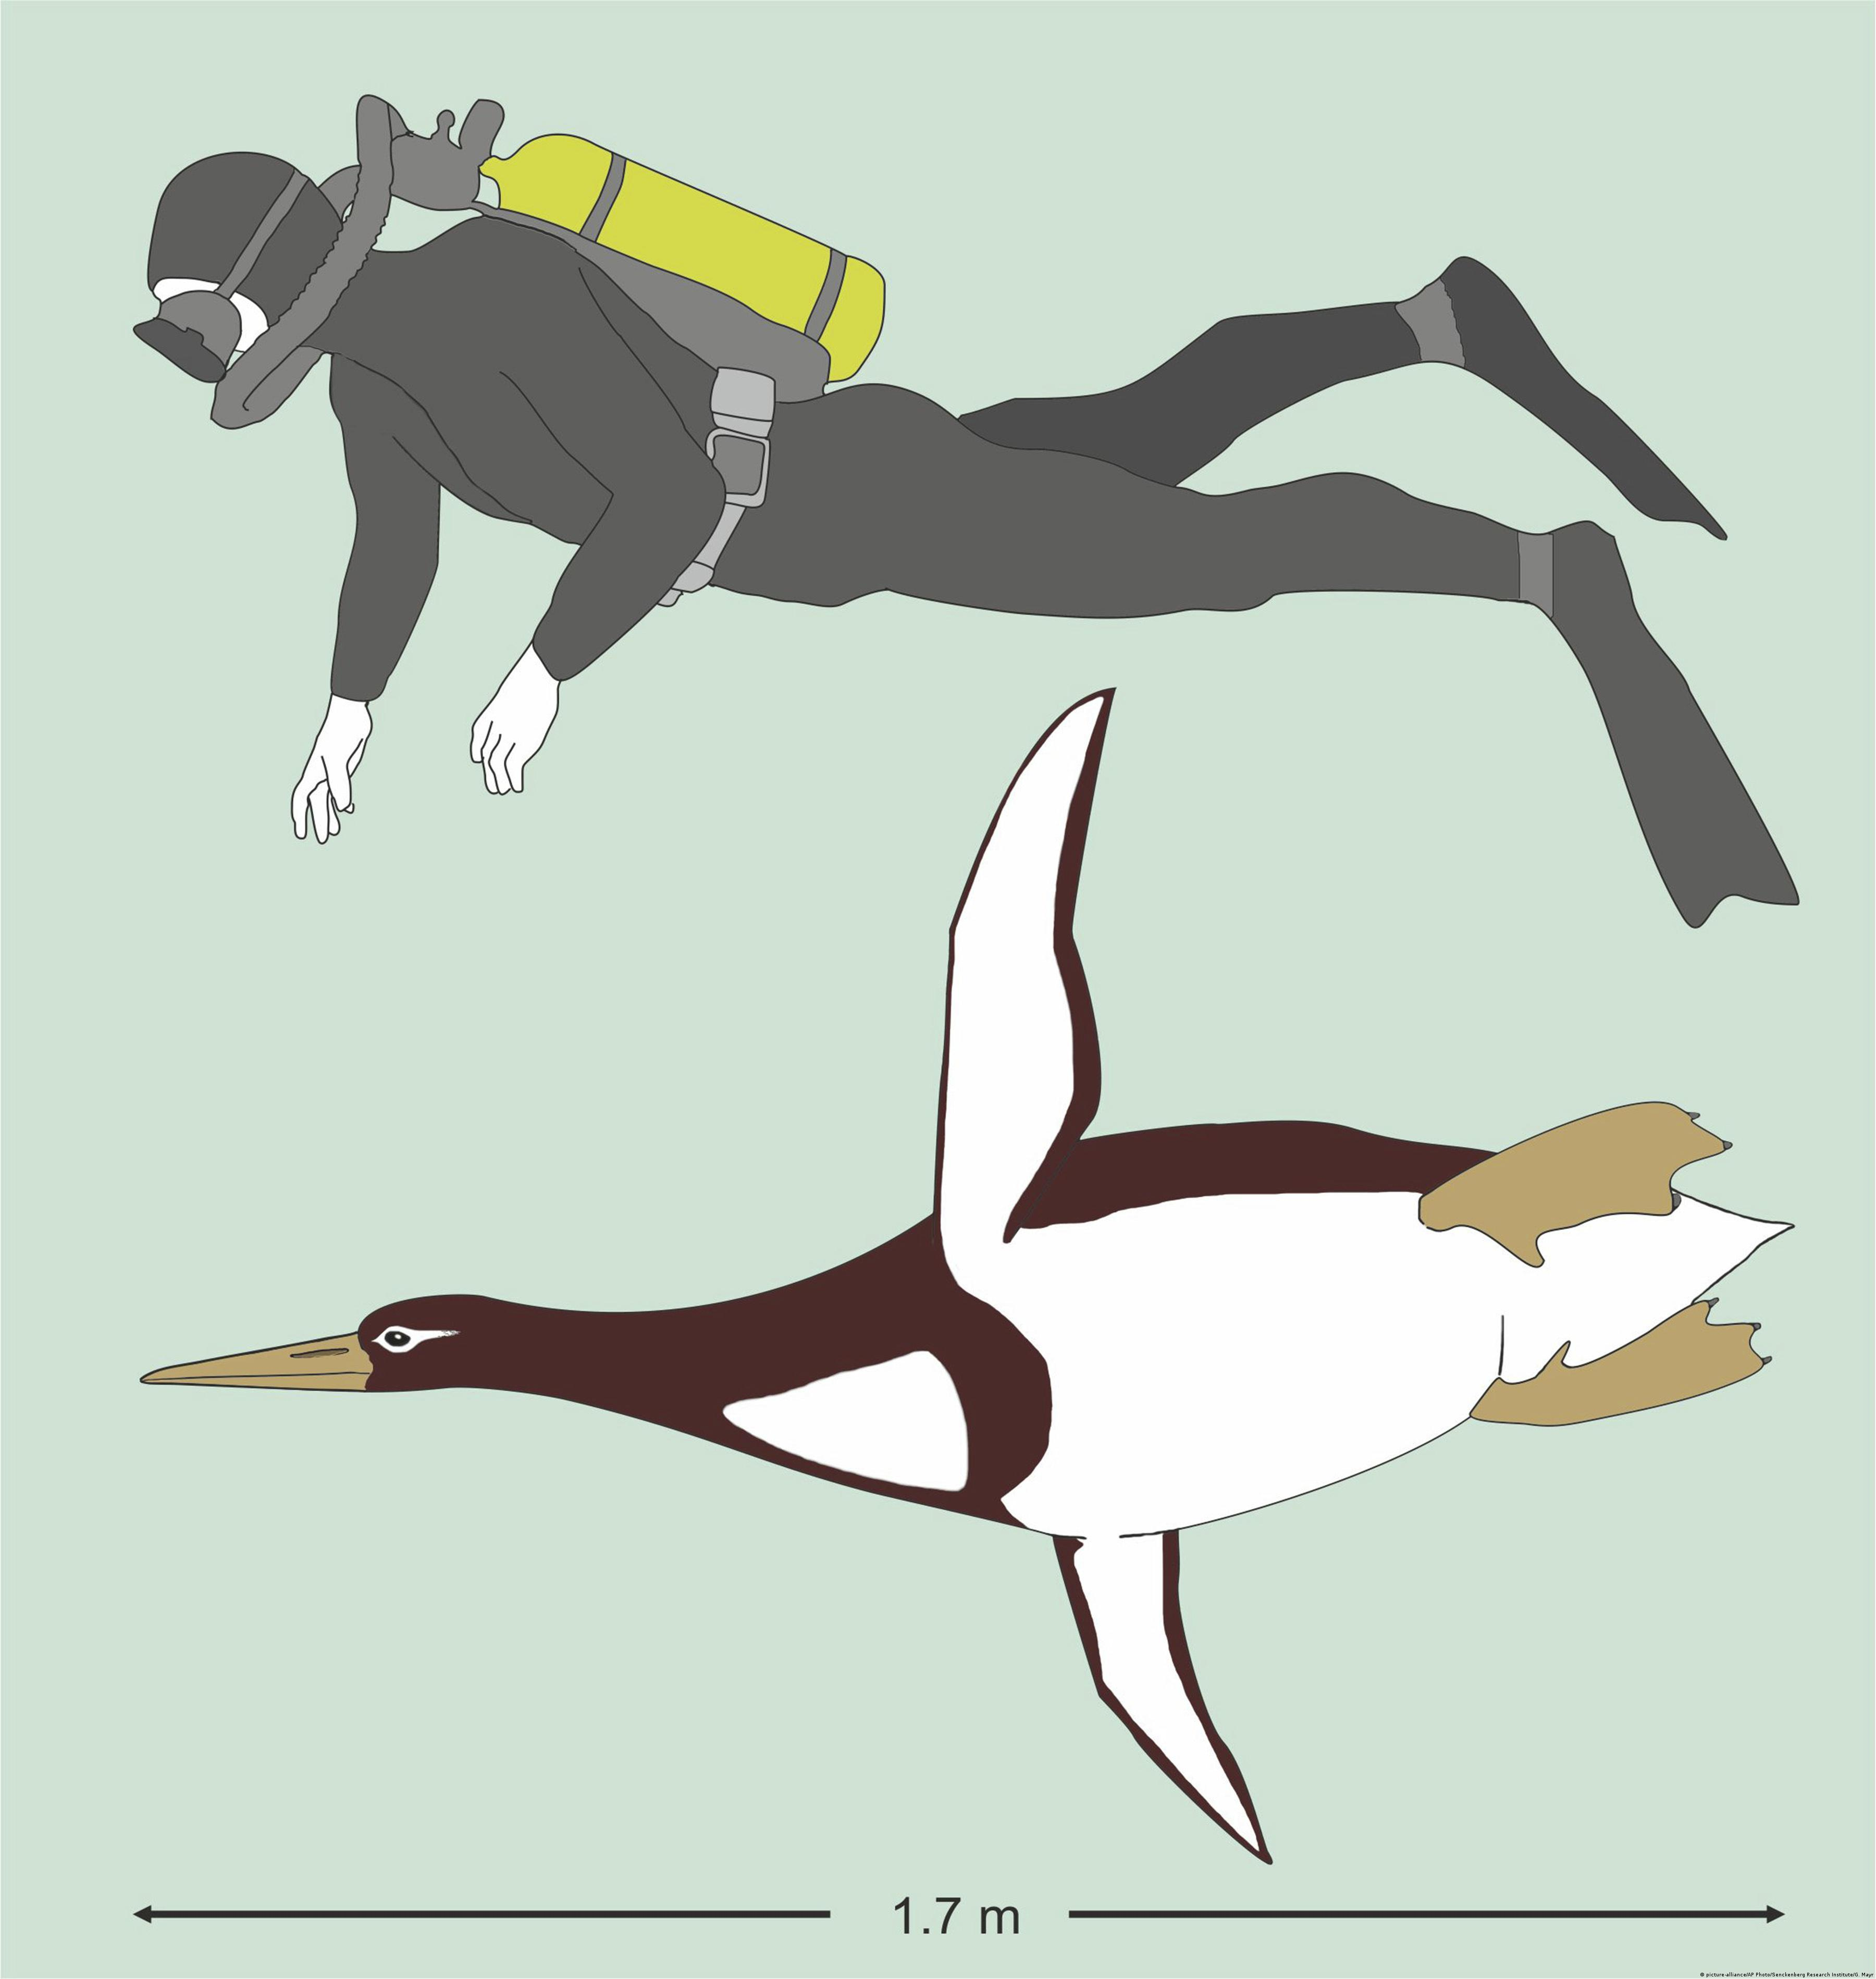 An illustration shows the sizes of an ancient giant penguin Kumimanu biceae and a human being.